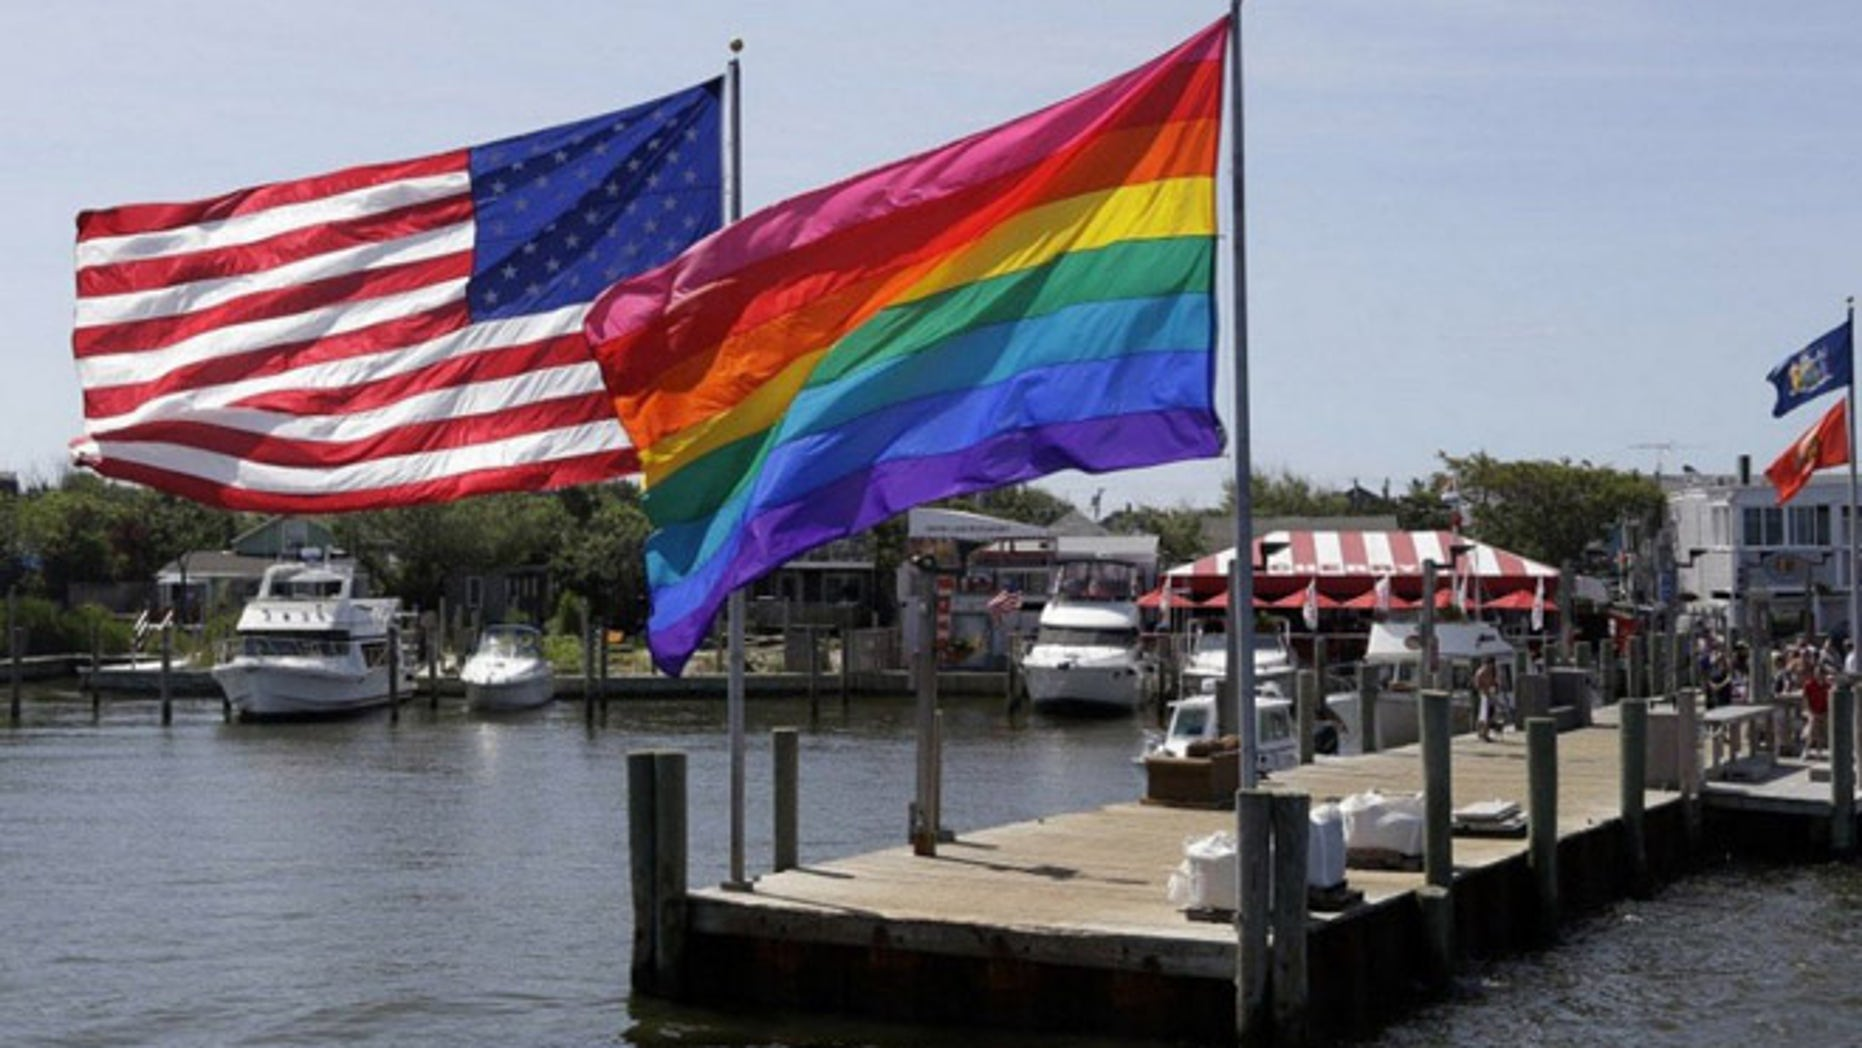 An American flag and a gay pride banner wave together on Fire Island, a barrier island off New York that is a popular summer destination for LGBT revelers. (AP)